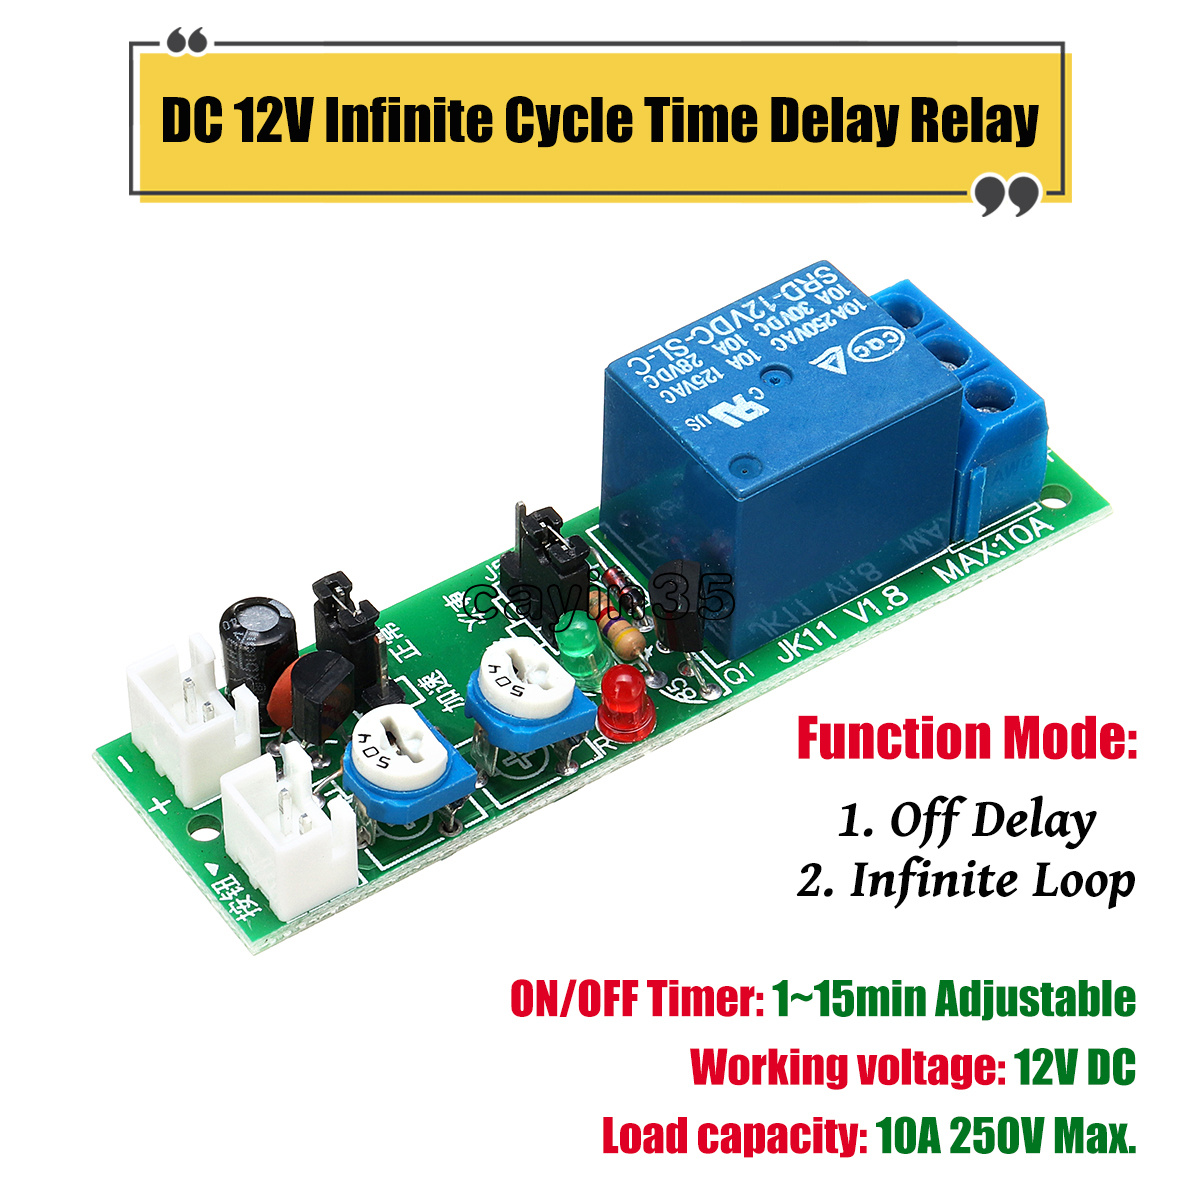 Dc 12v Infinite Cycle Loop Timer Delay Adjustable Time Relay Switch Function Module